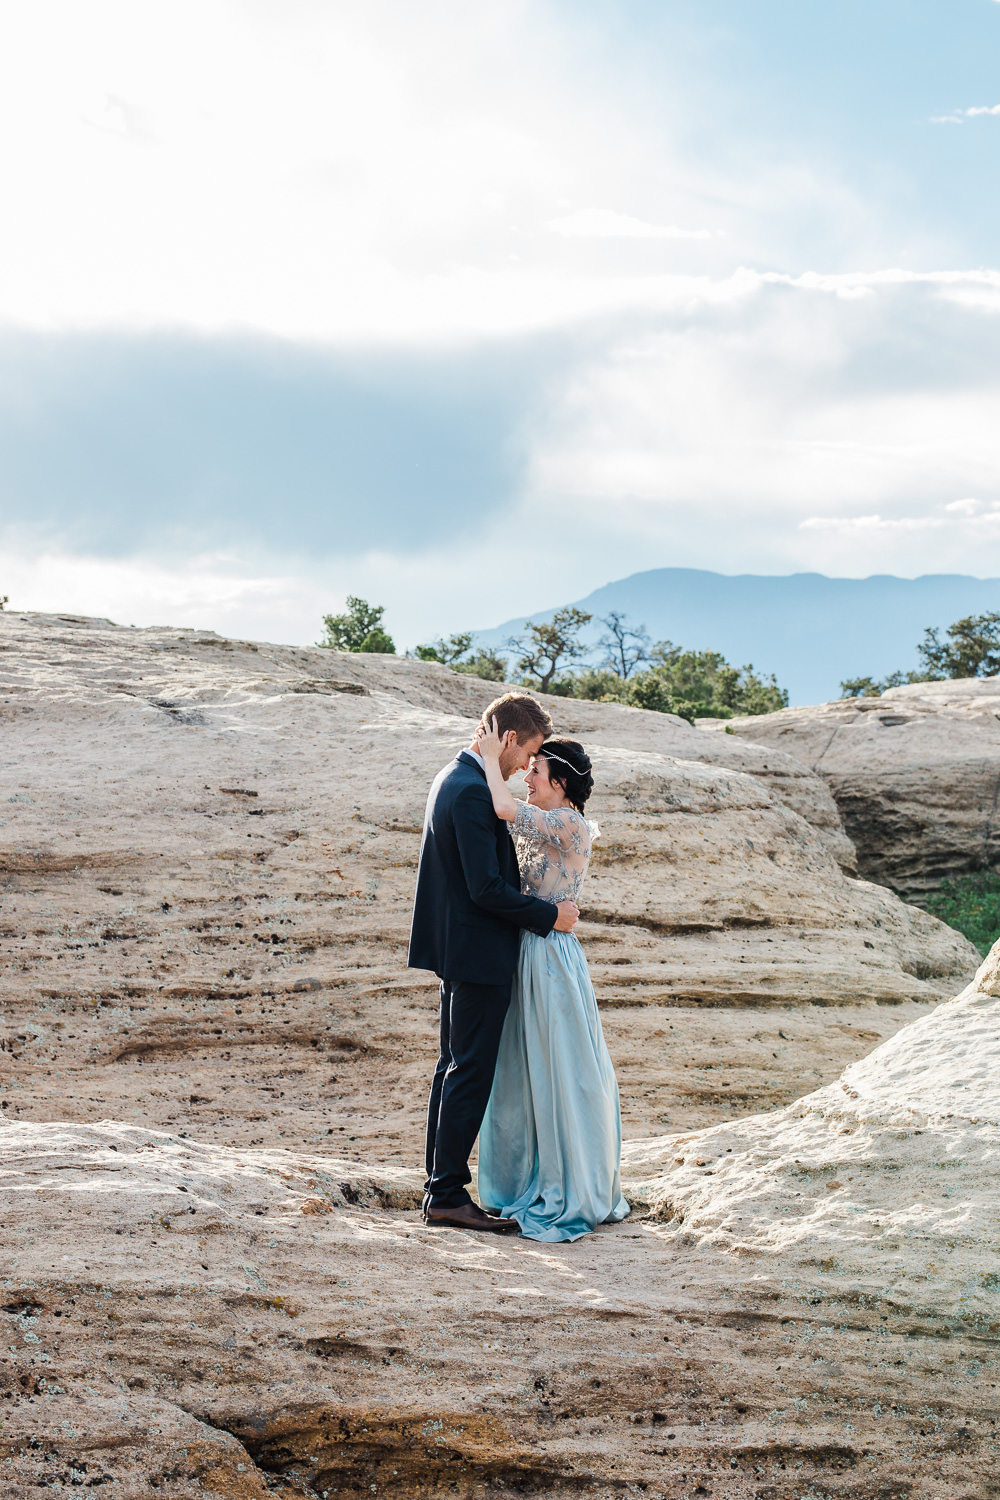 KyleLovesTori-Zion-National-Park-Adventure-Bridals-3.jpg